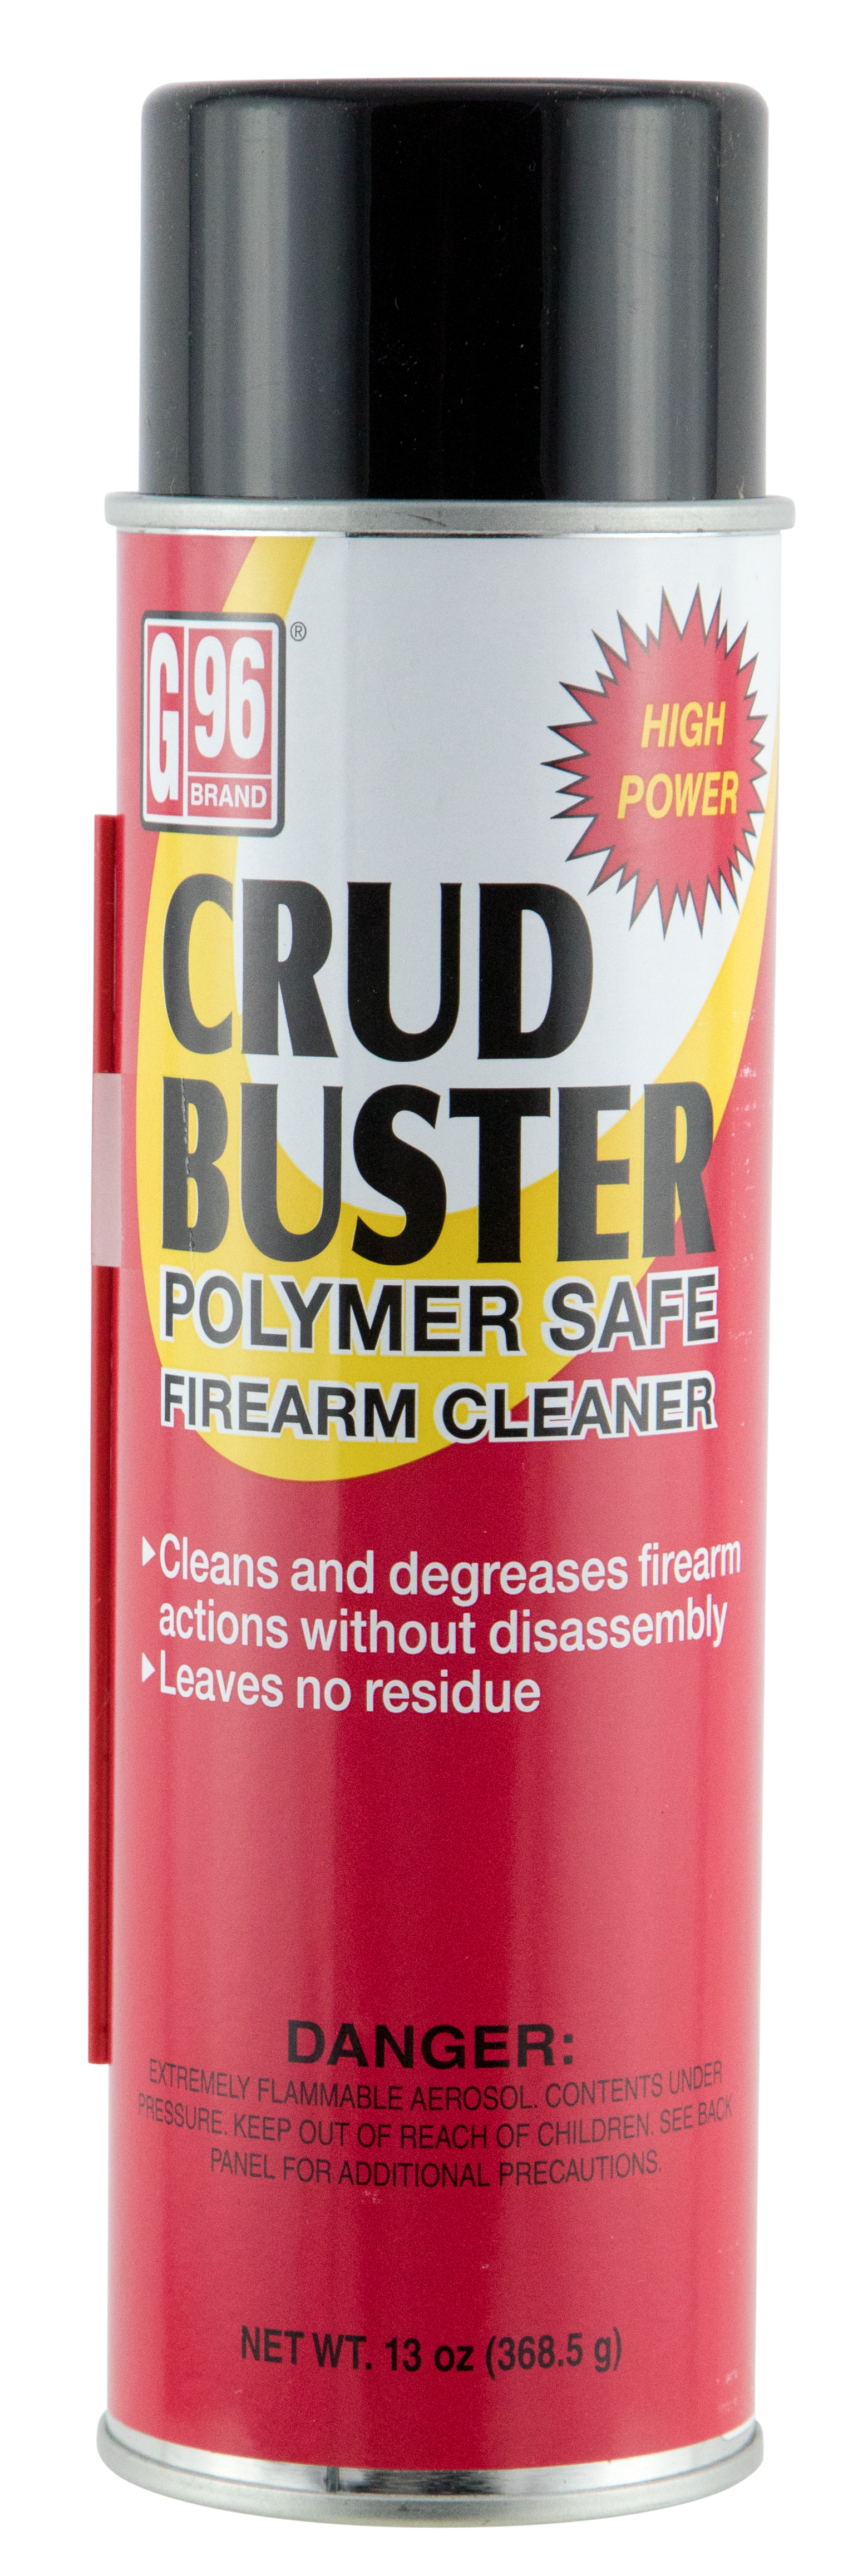 G96 1202 Crud Buster Firearms Cleaner Aerosol Degreaser 13 oz